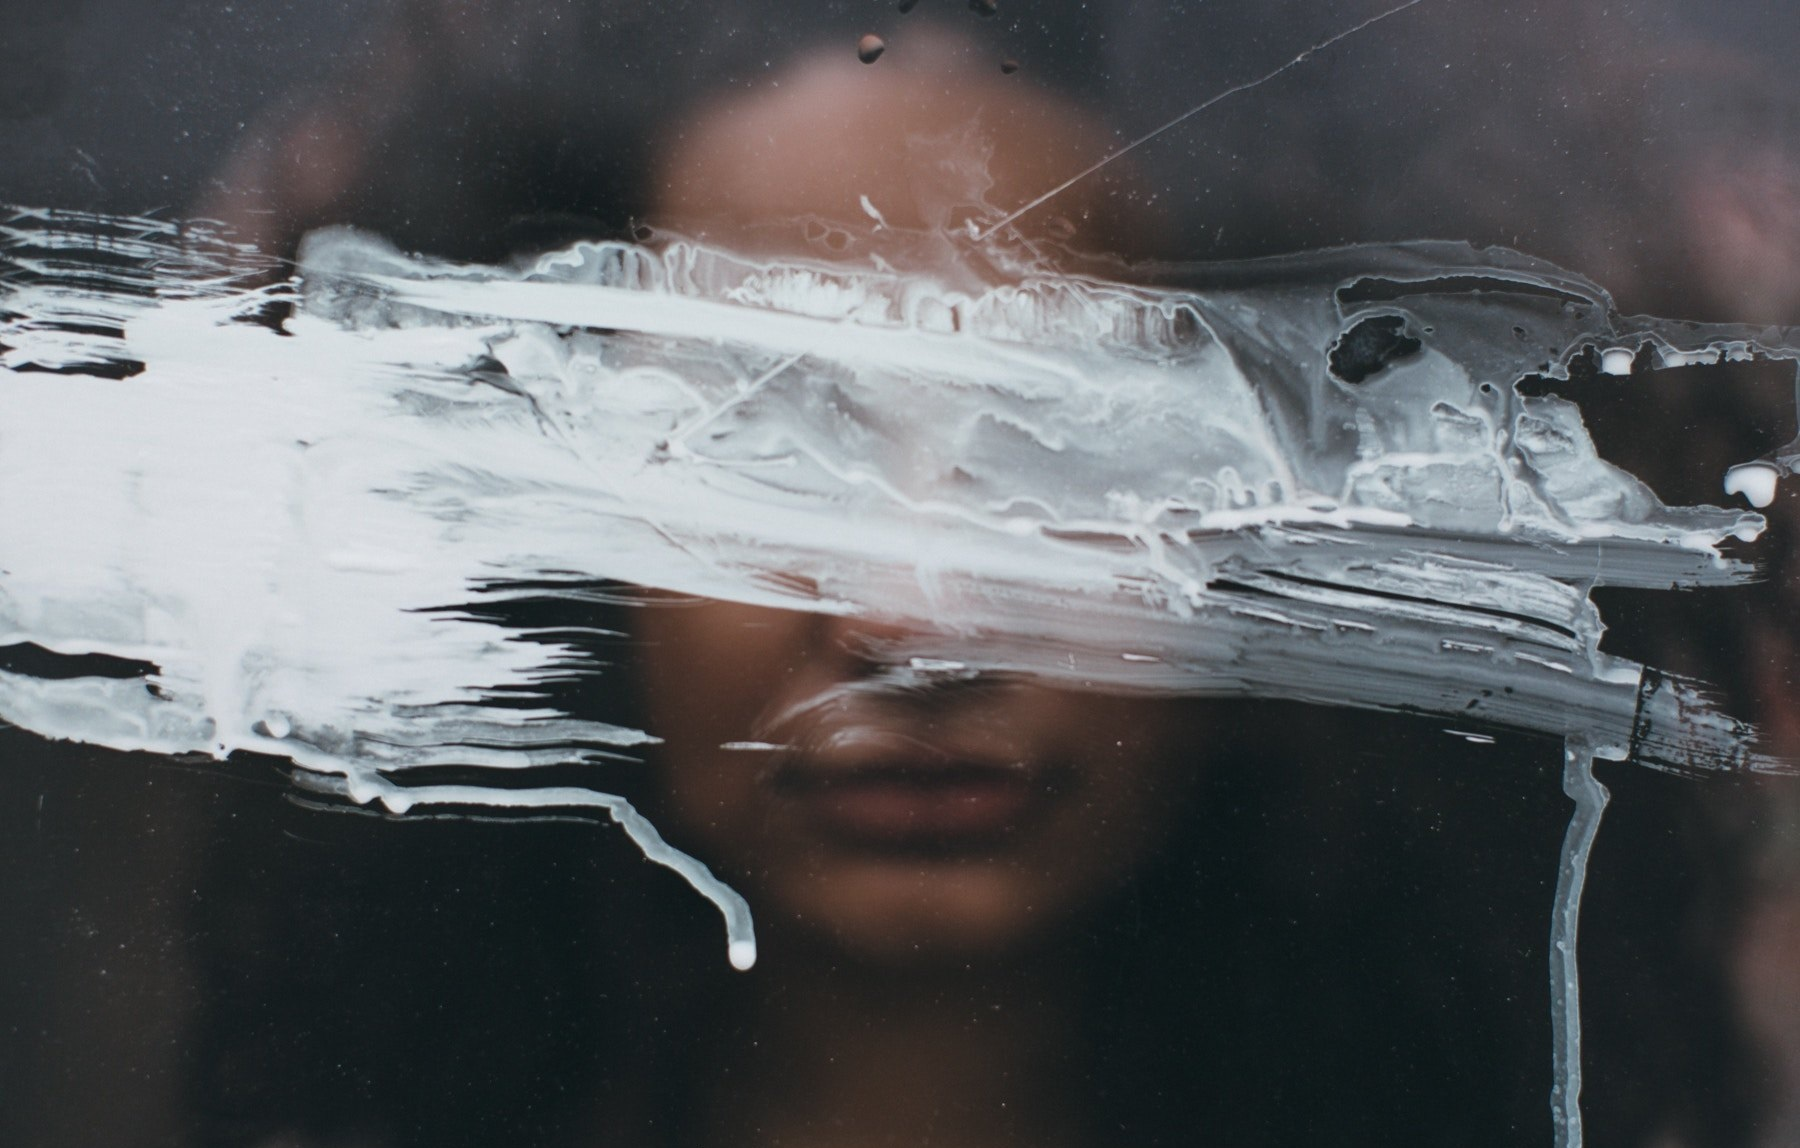 Psychological trauma can be erased from memory